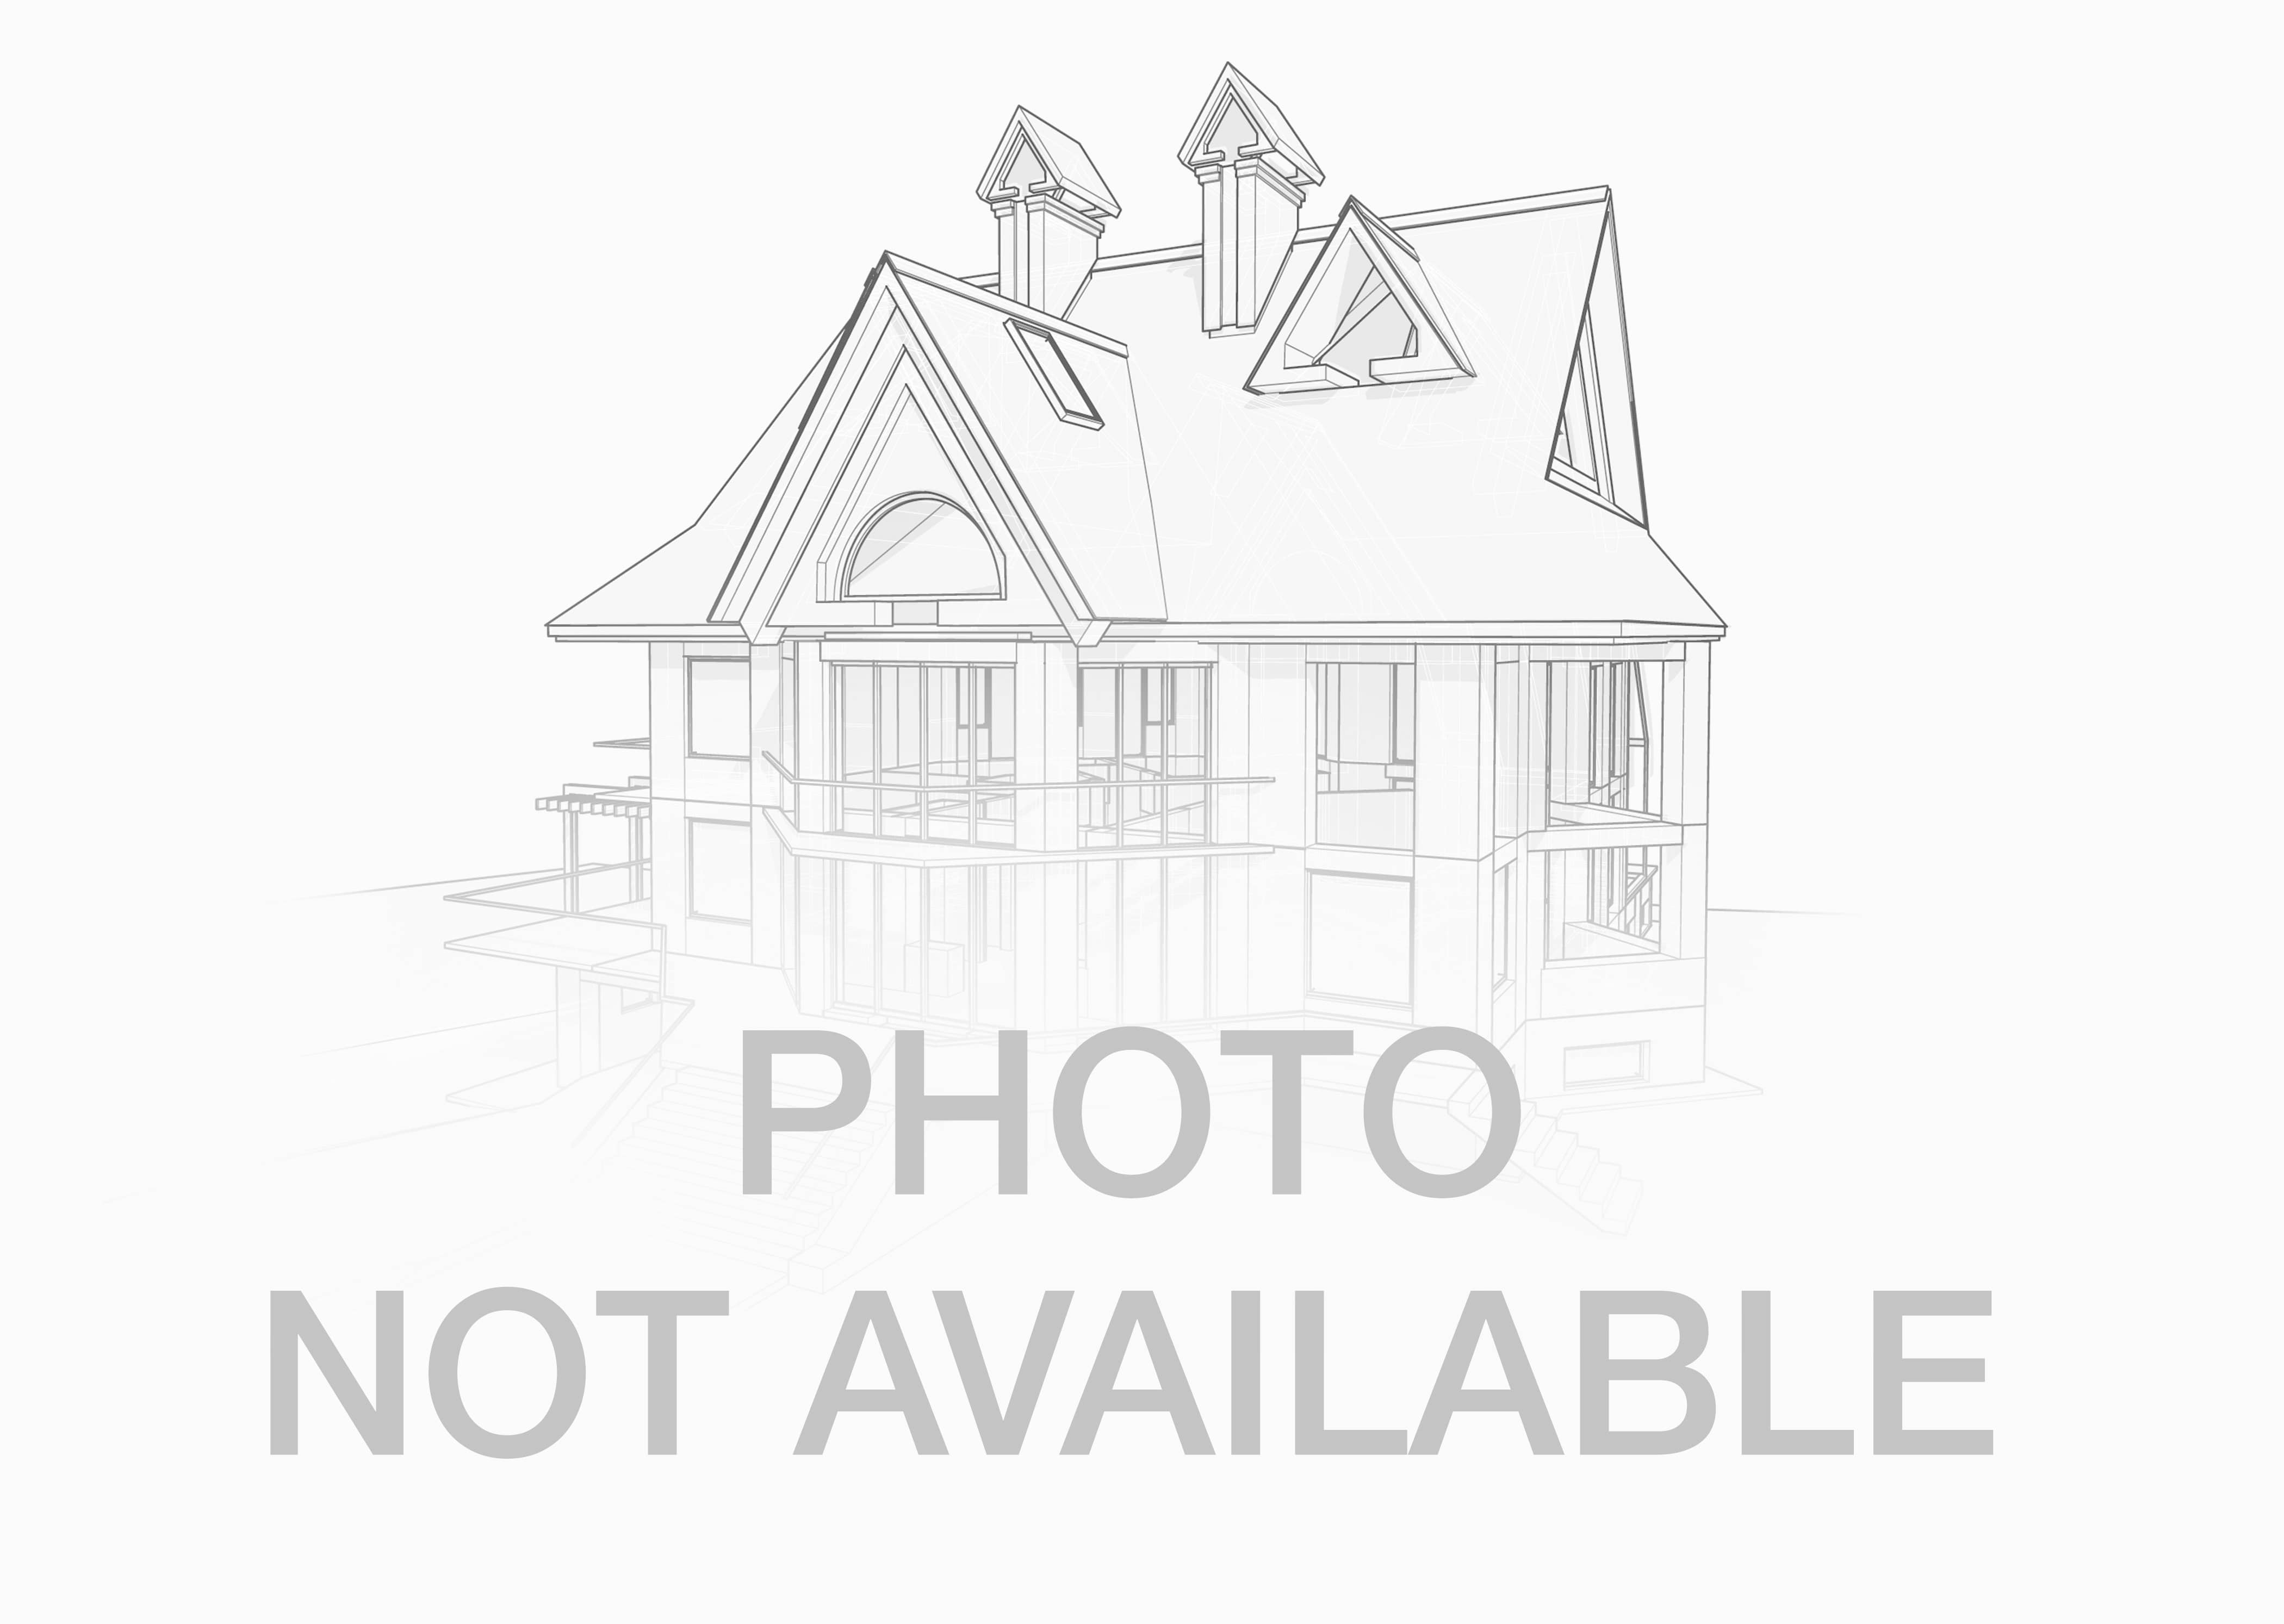 11 Badger St., Concord, NH 03301 - MLS ID 4746401 - Better Homes and Gardens Real Estate The Masiello Group